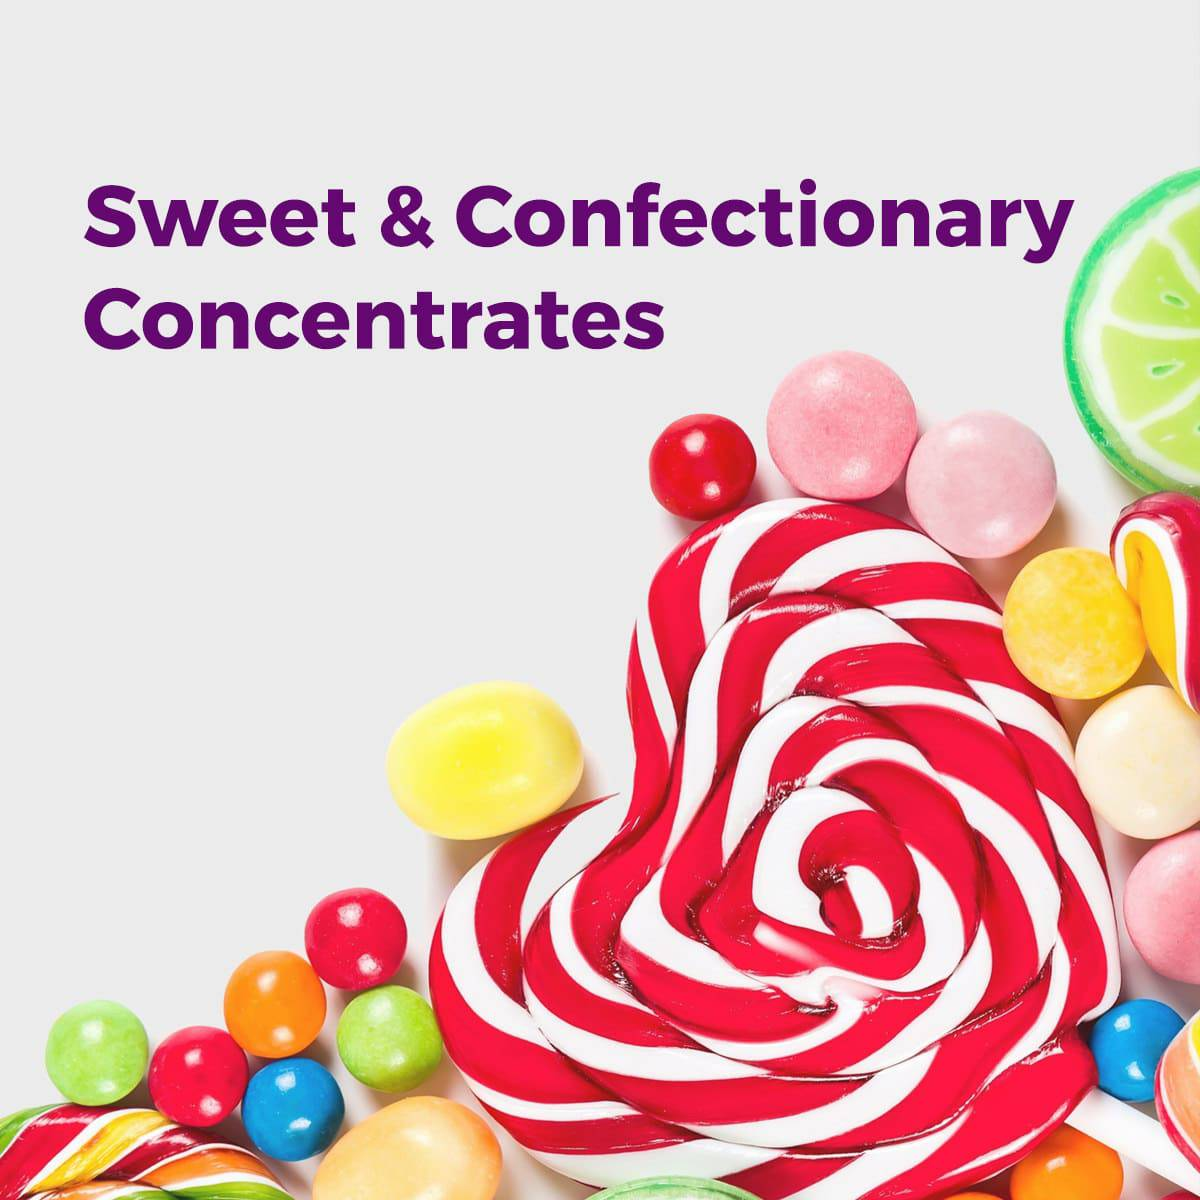 Sweet & Confectionary Concentrates